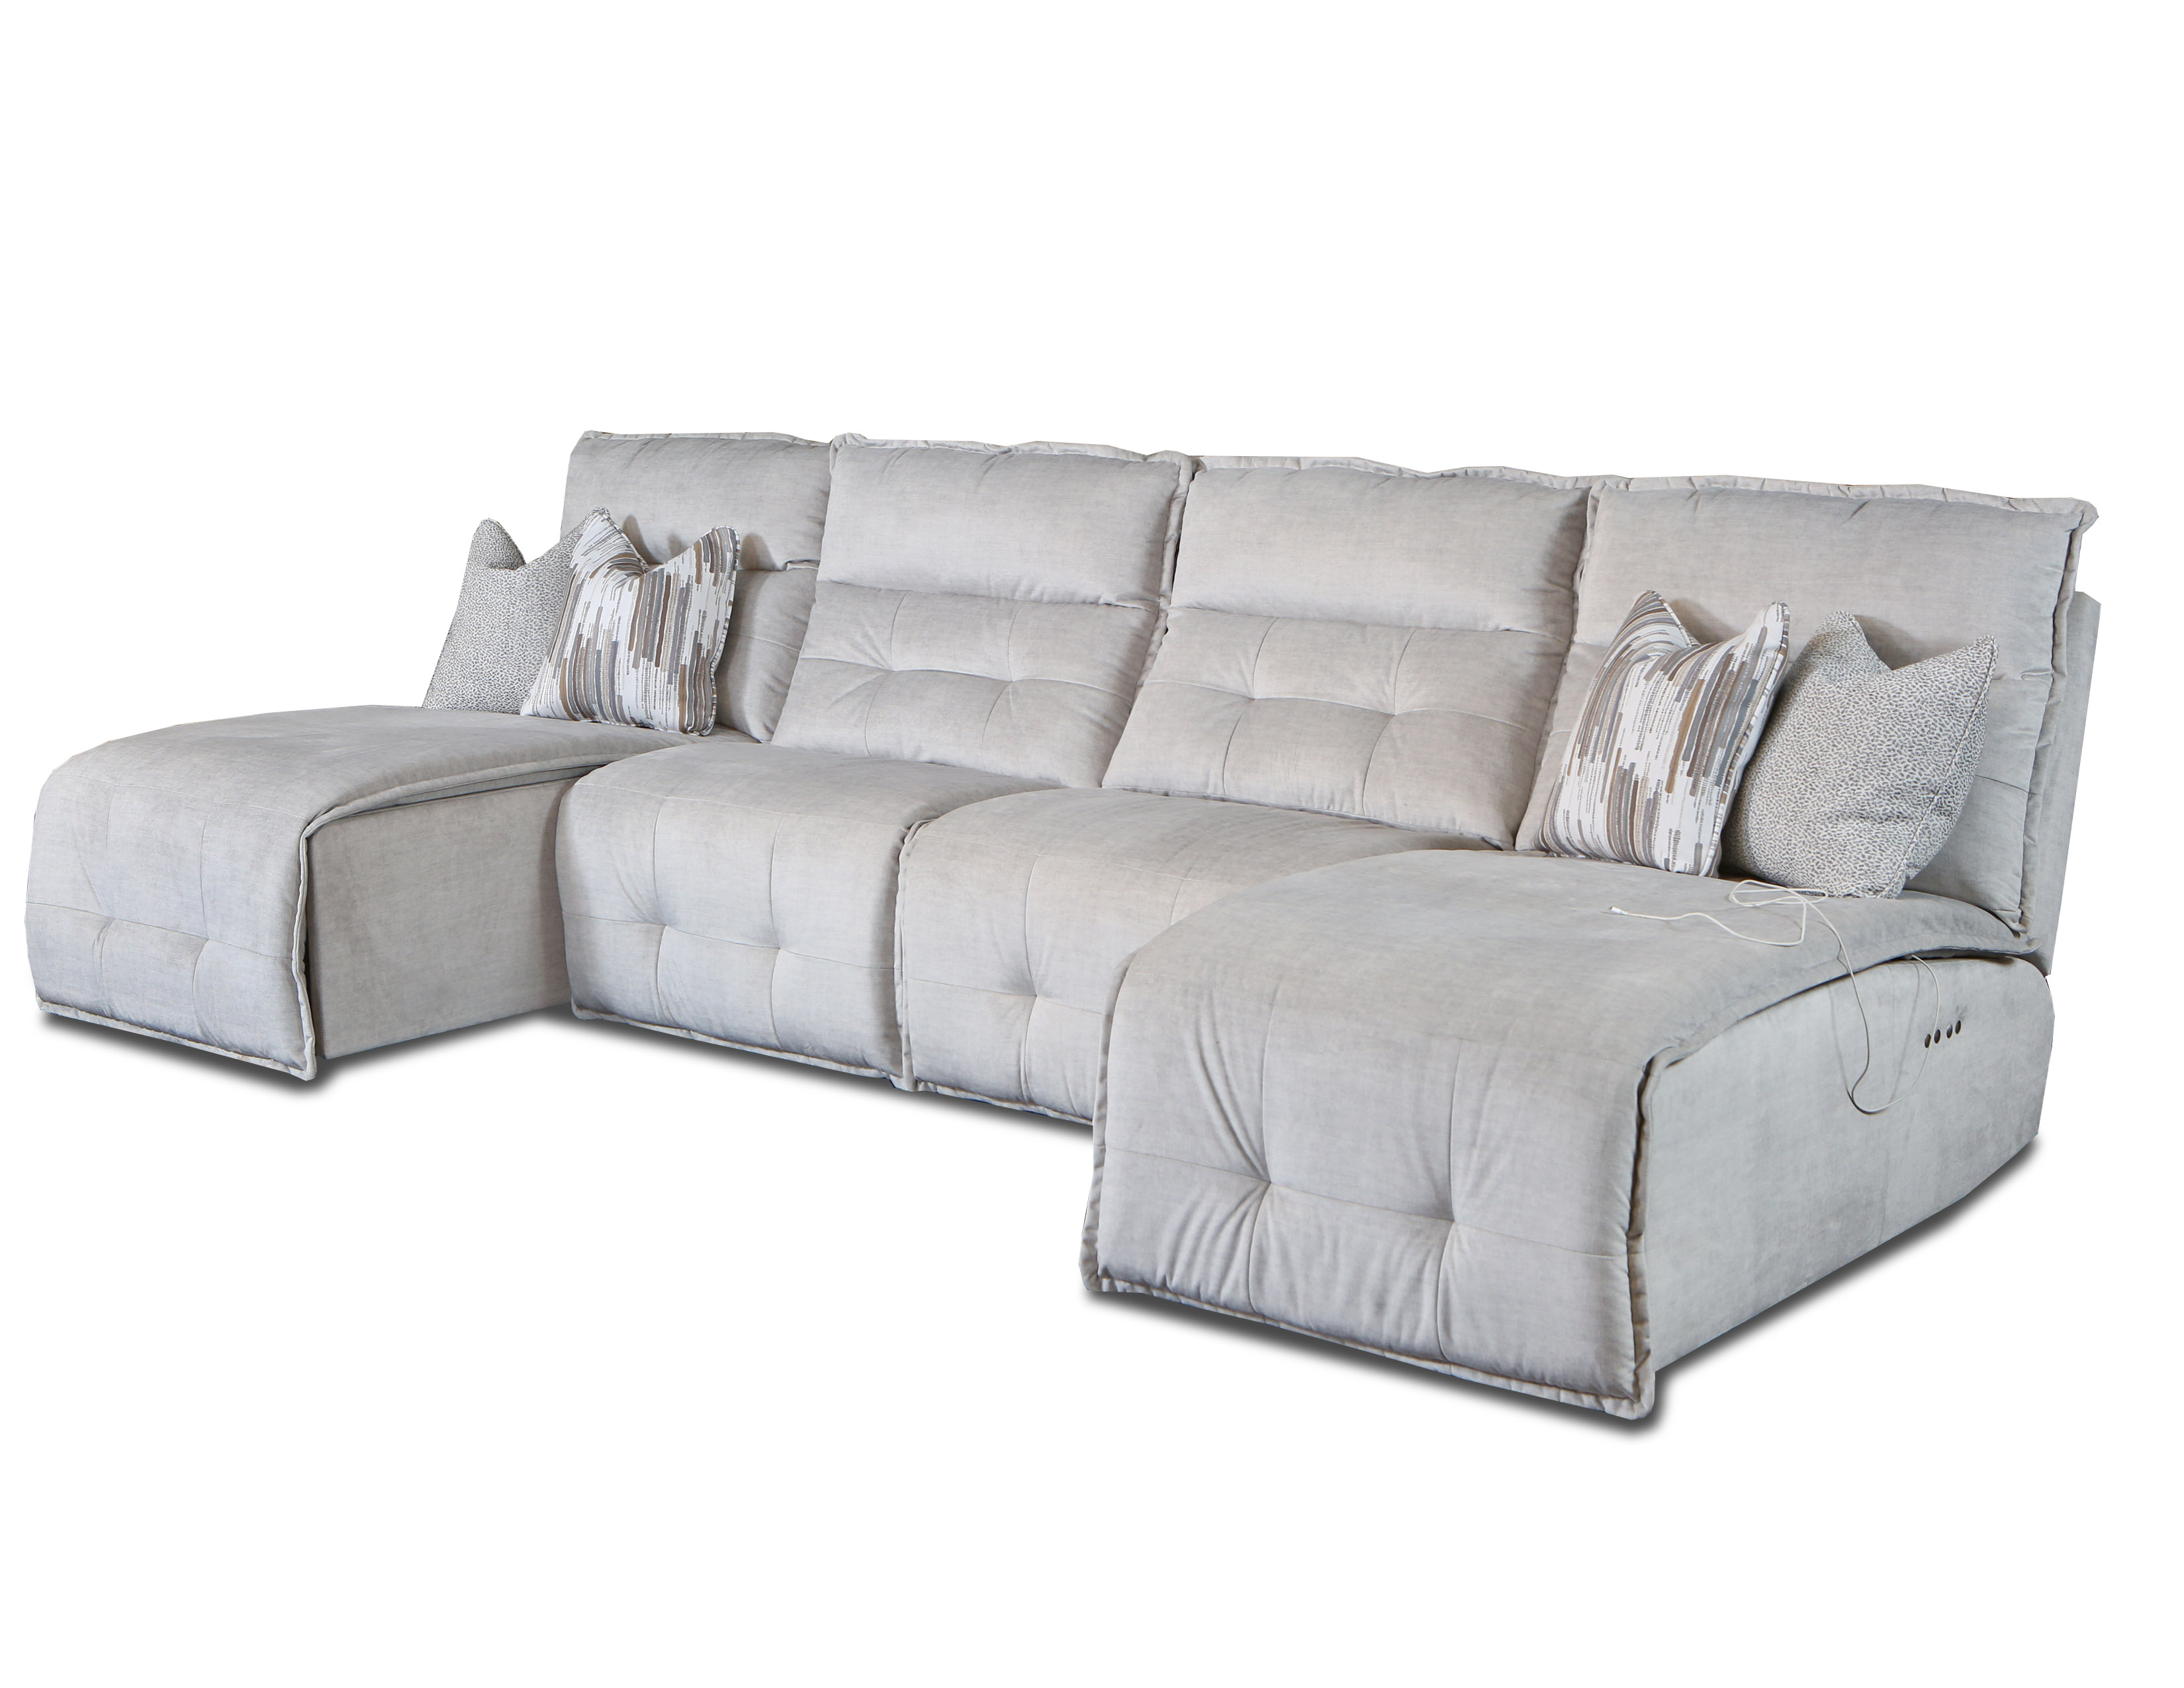 230-BLOCK-BUSTER-4-PC-CHAISE-SECT-IN-157-09-LEGACY-PLATINUM-SWP